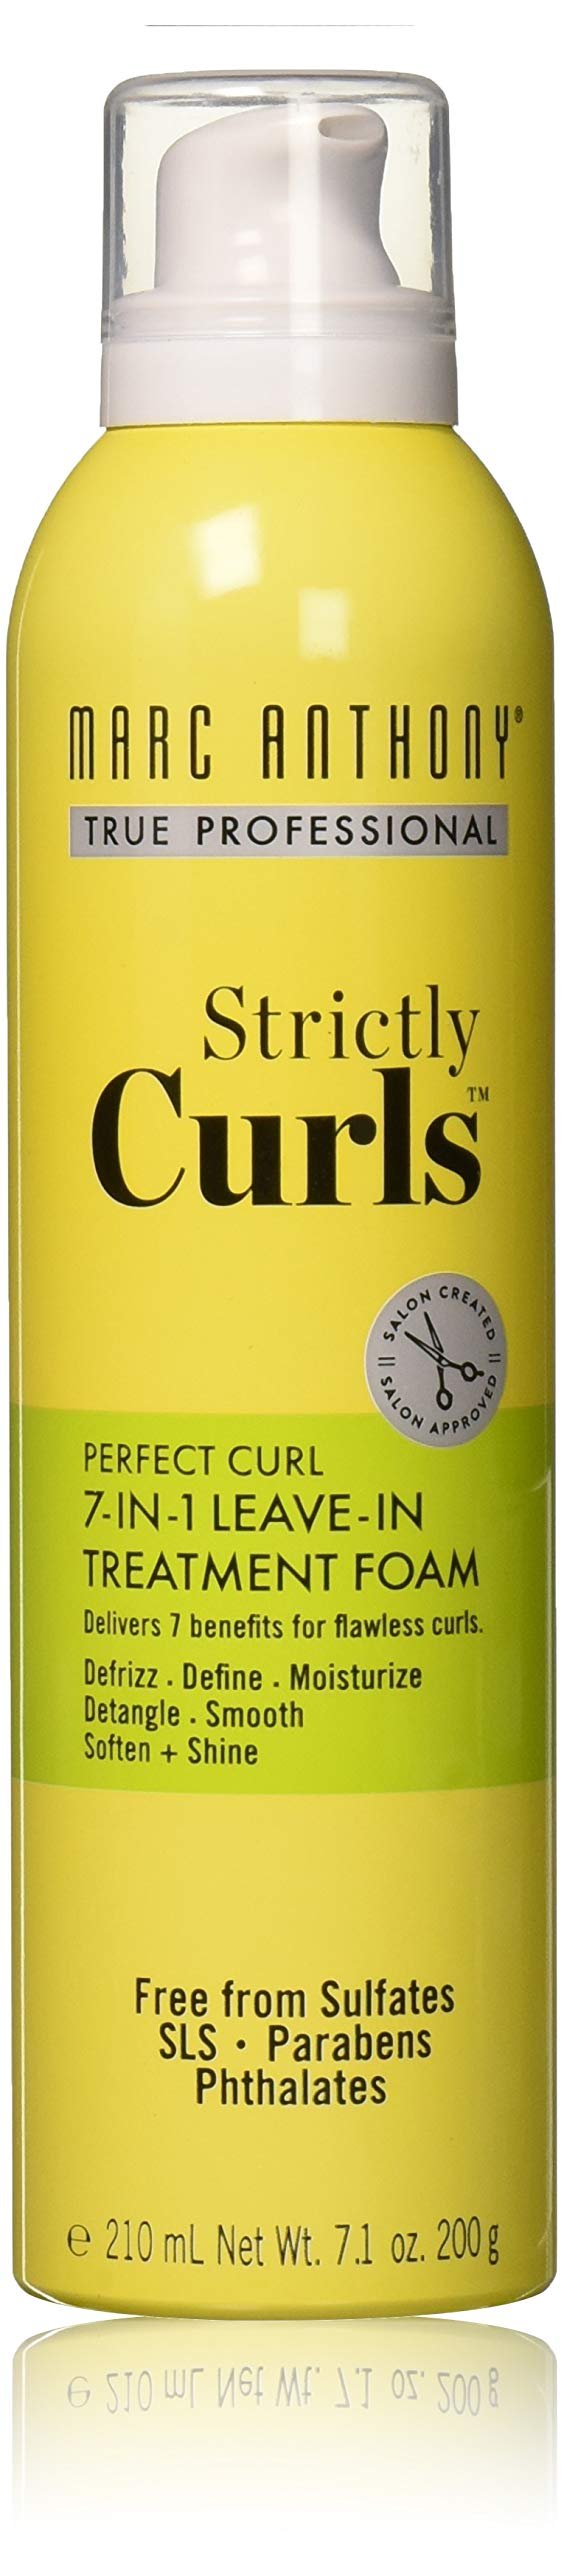 Marc Anthony True Professional Strictly Curls Perfect Curl 7-In-1 Leave In Treatment Foam, 7.1 Ounce